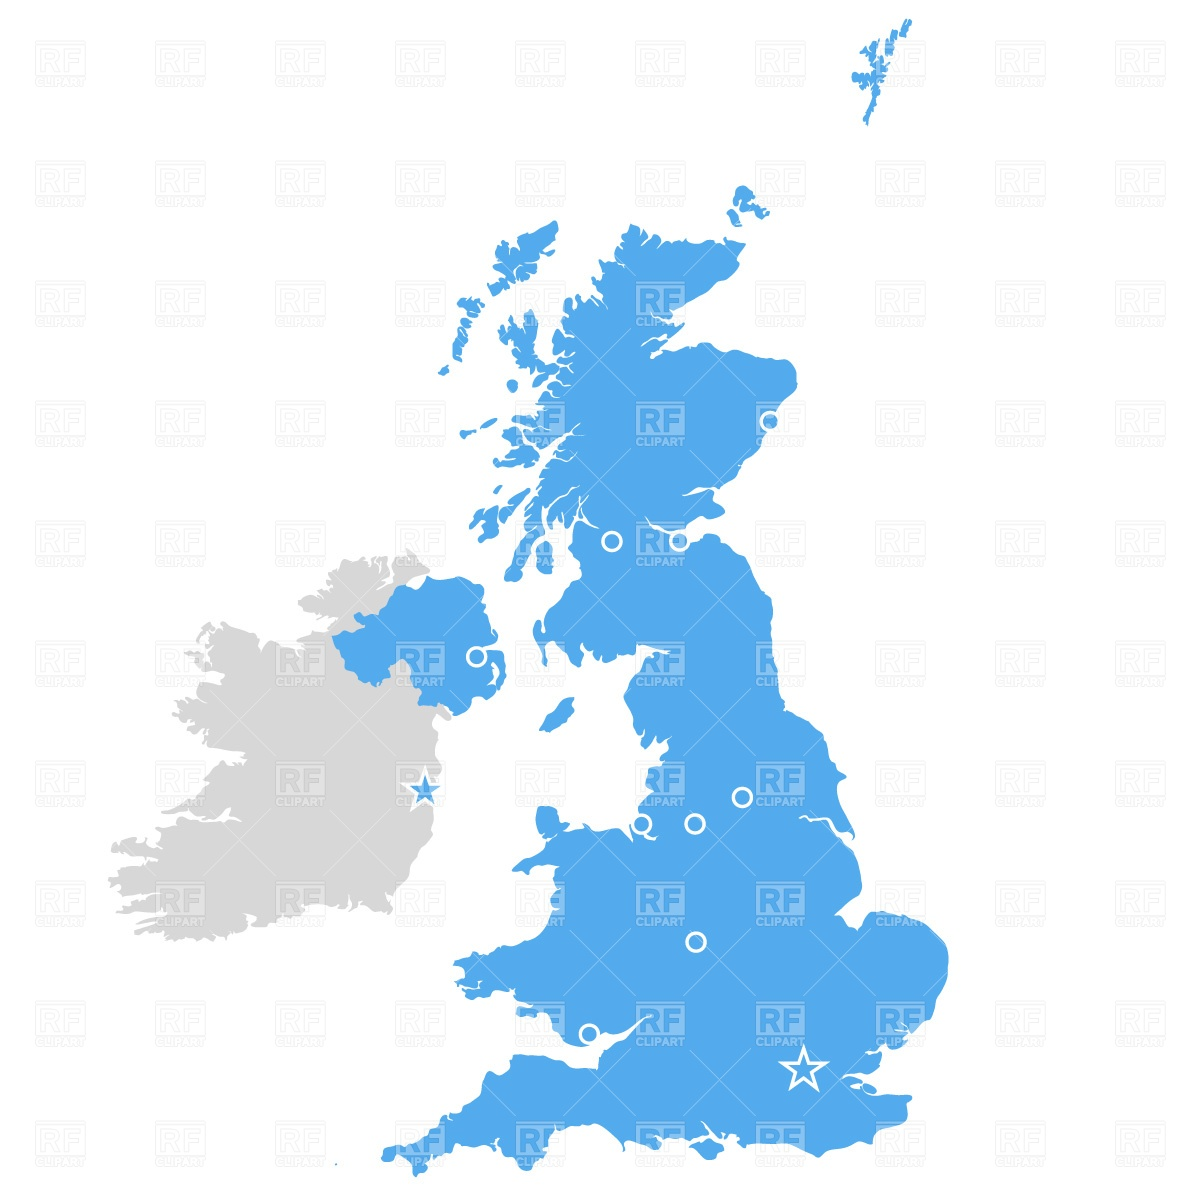 Blank united kingdom clipart map.